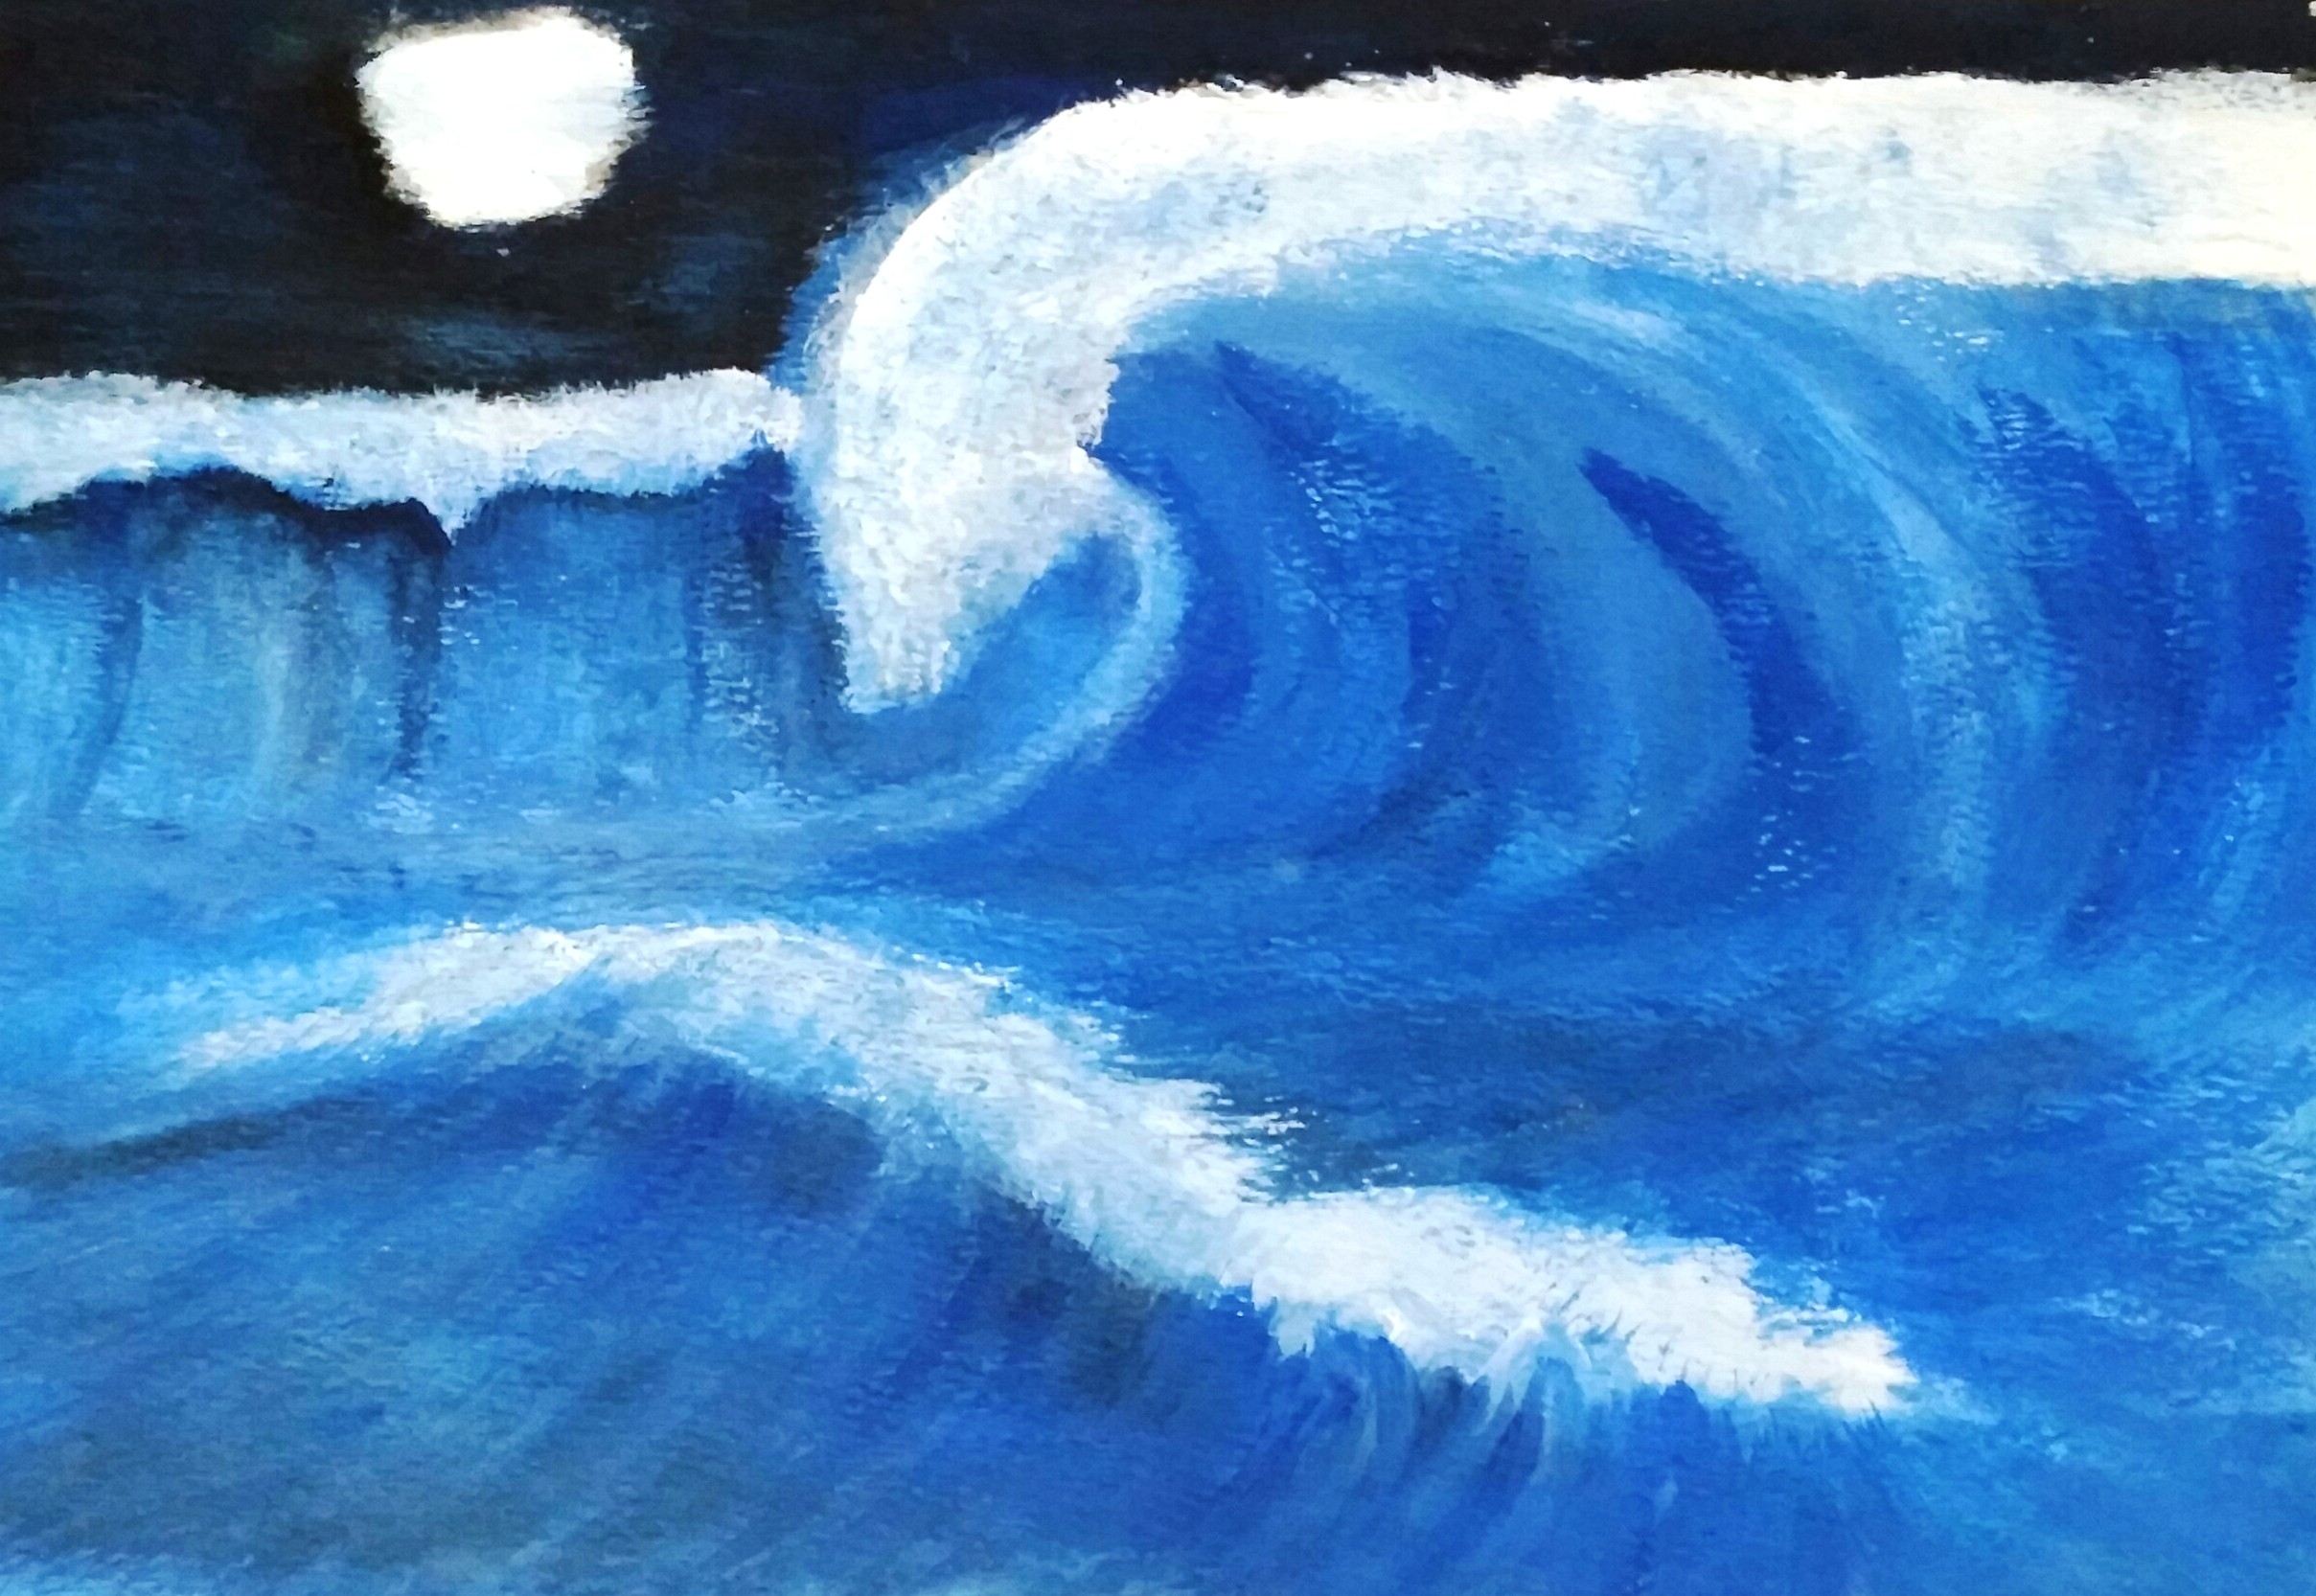 Waves artwork by Sana  - art listed for sale on Artplode